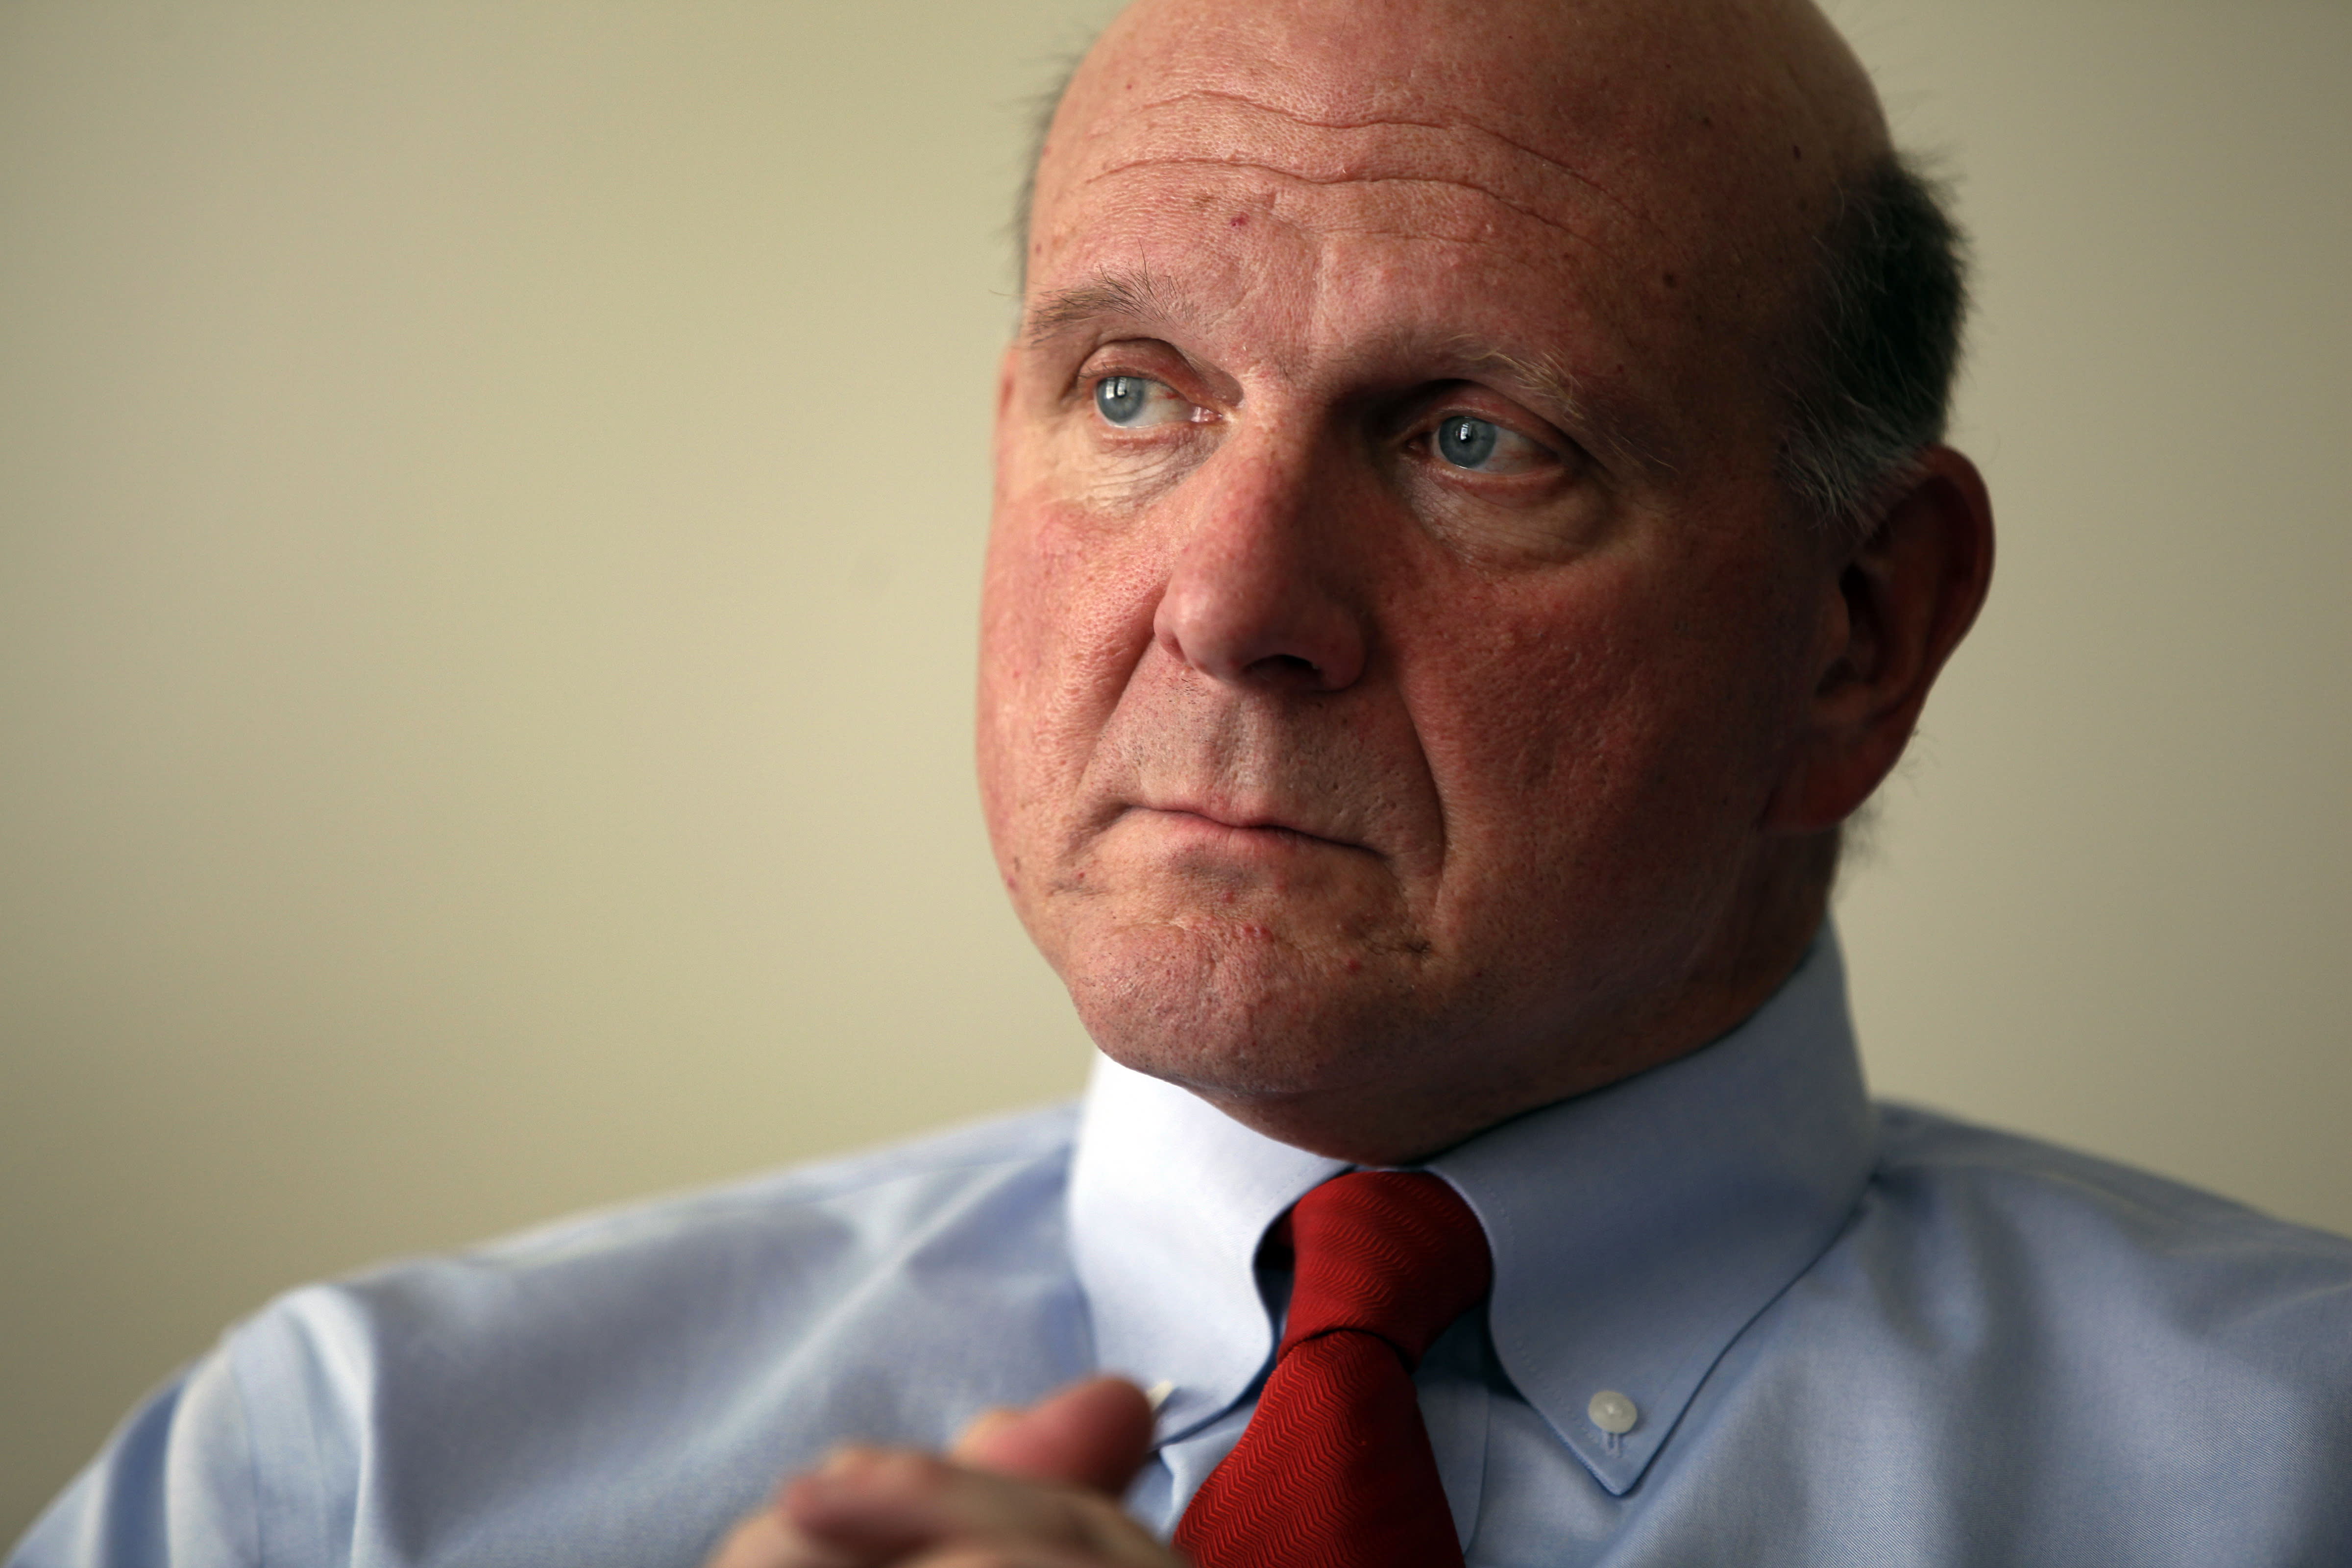 Coronavirus policies should be informed by 'the numbers': USAFacts Founder Steve Ballmer